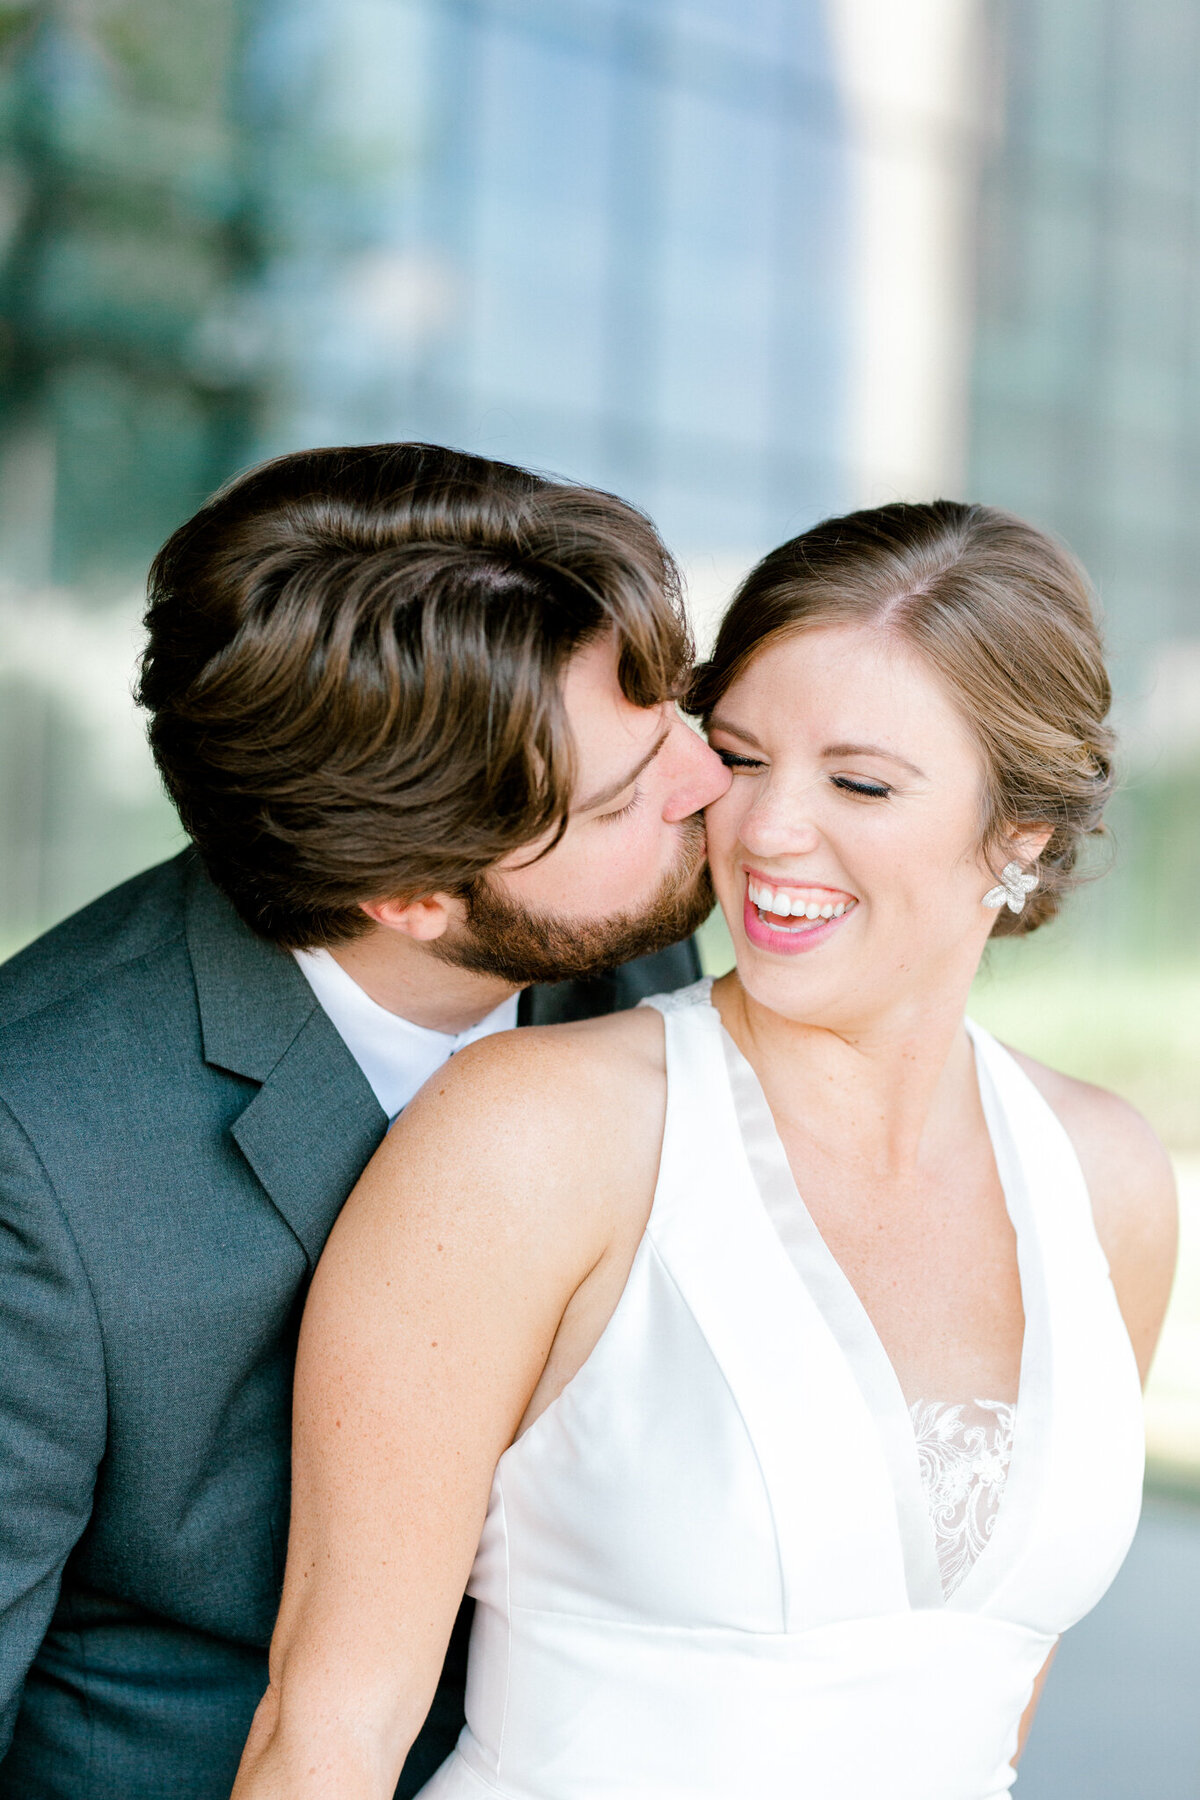 Kaylee & Michael's Wedding at Watermark Community Church | Dallas Wedding Photographer | Sami Kathryn Photography-70